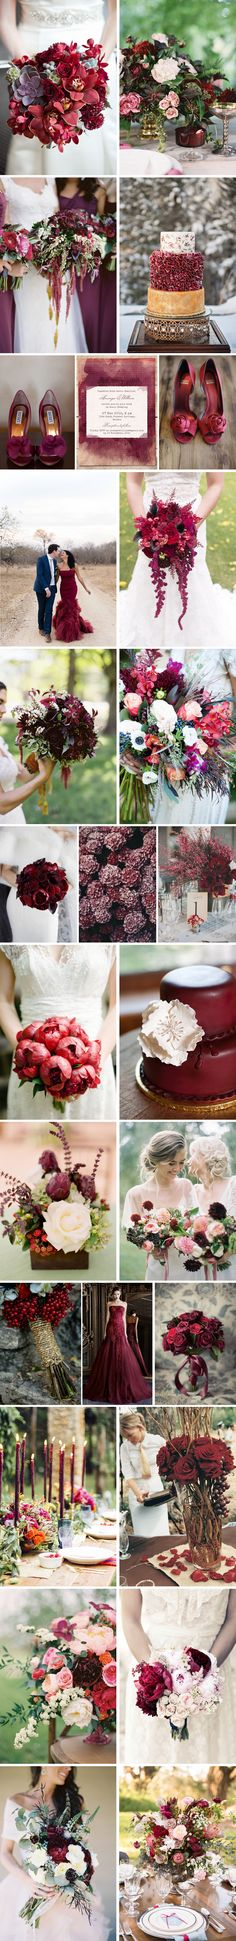 Pantone Color of 2015: Marsala wedding inspiration